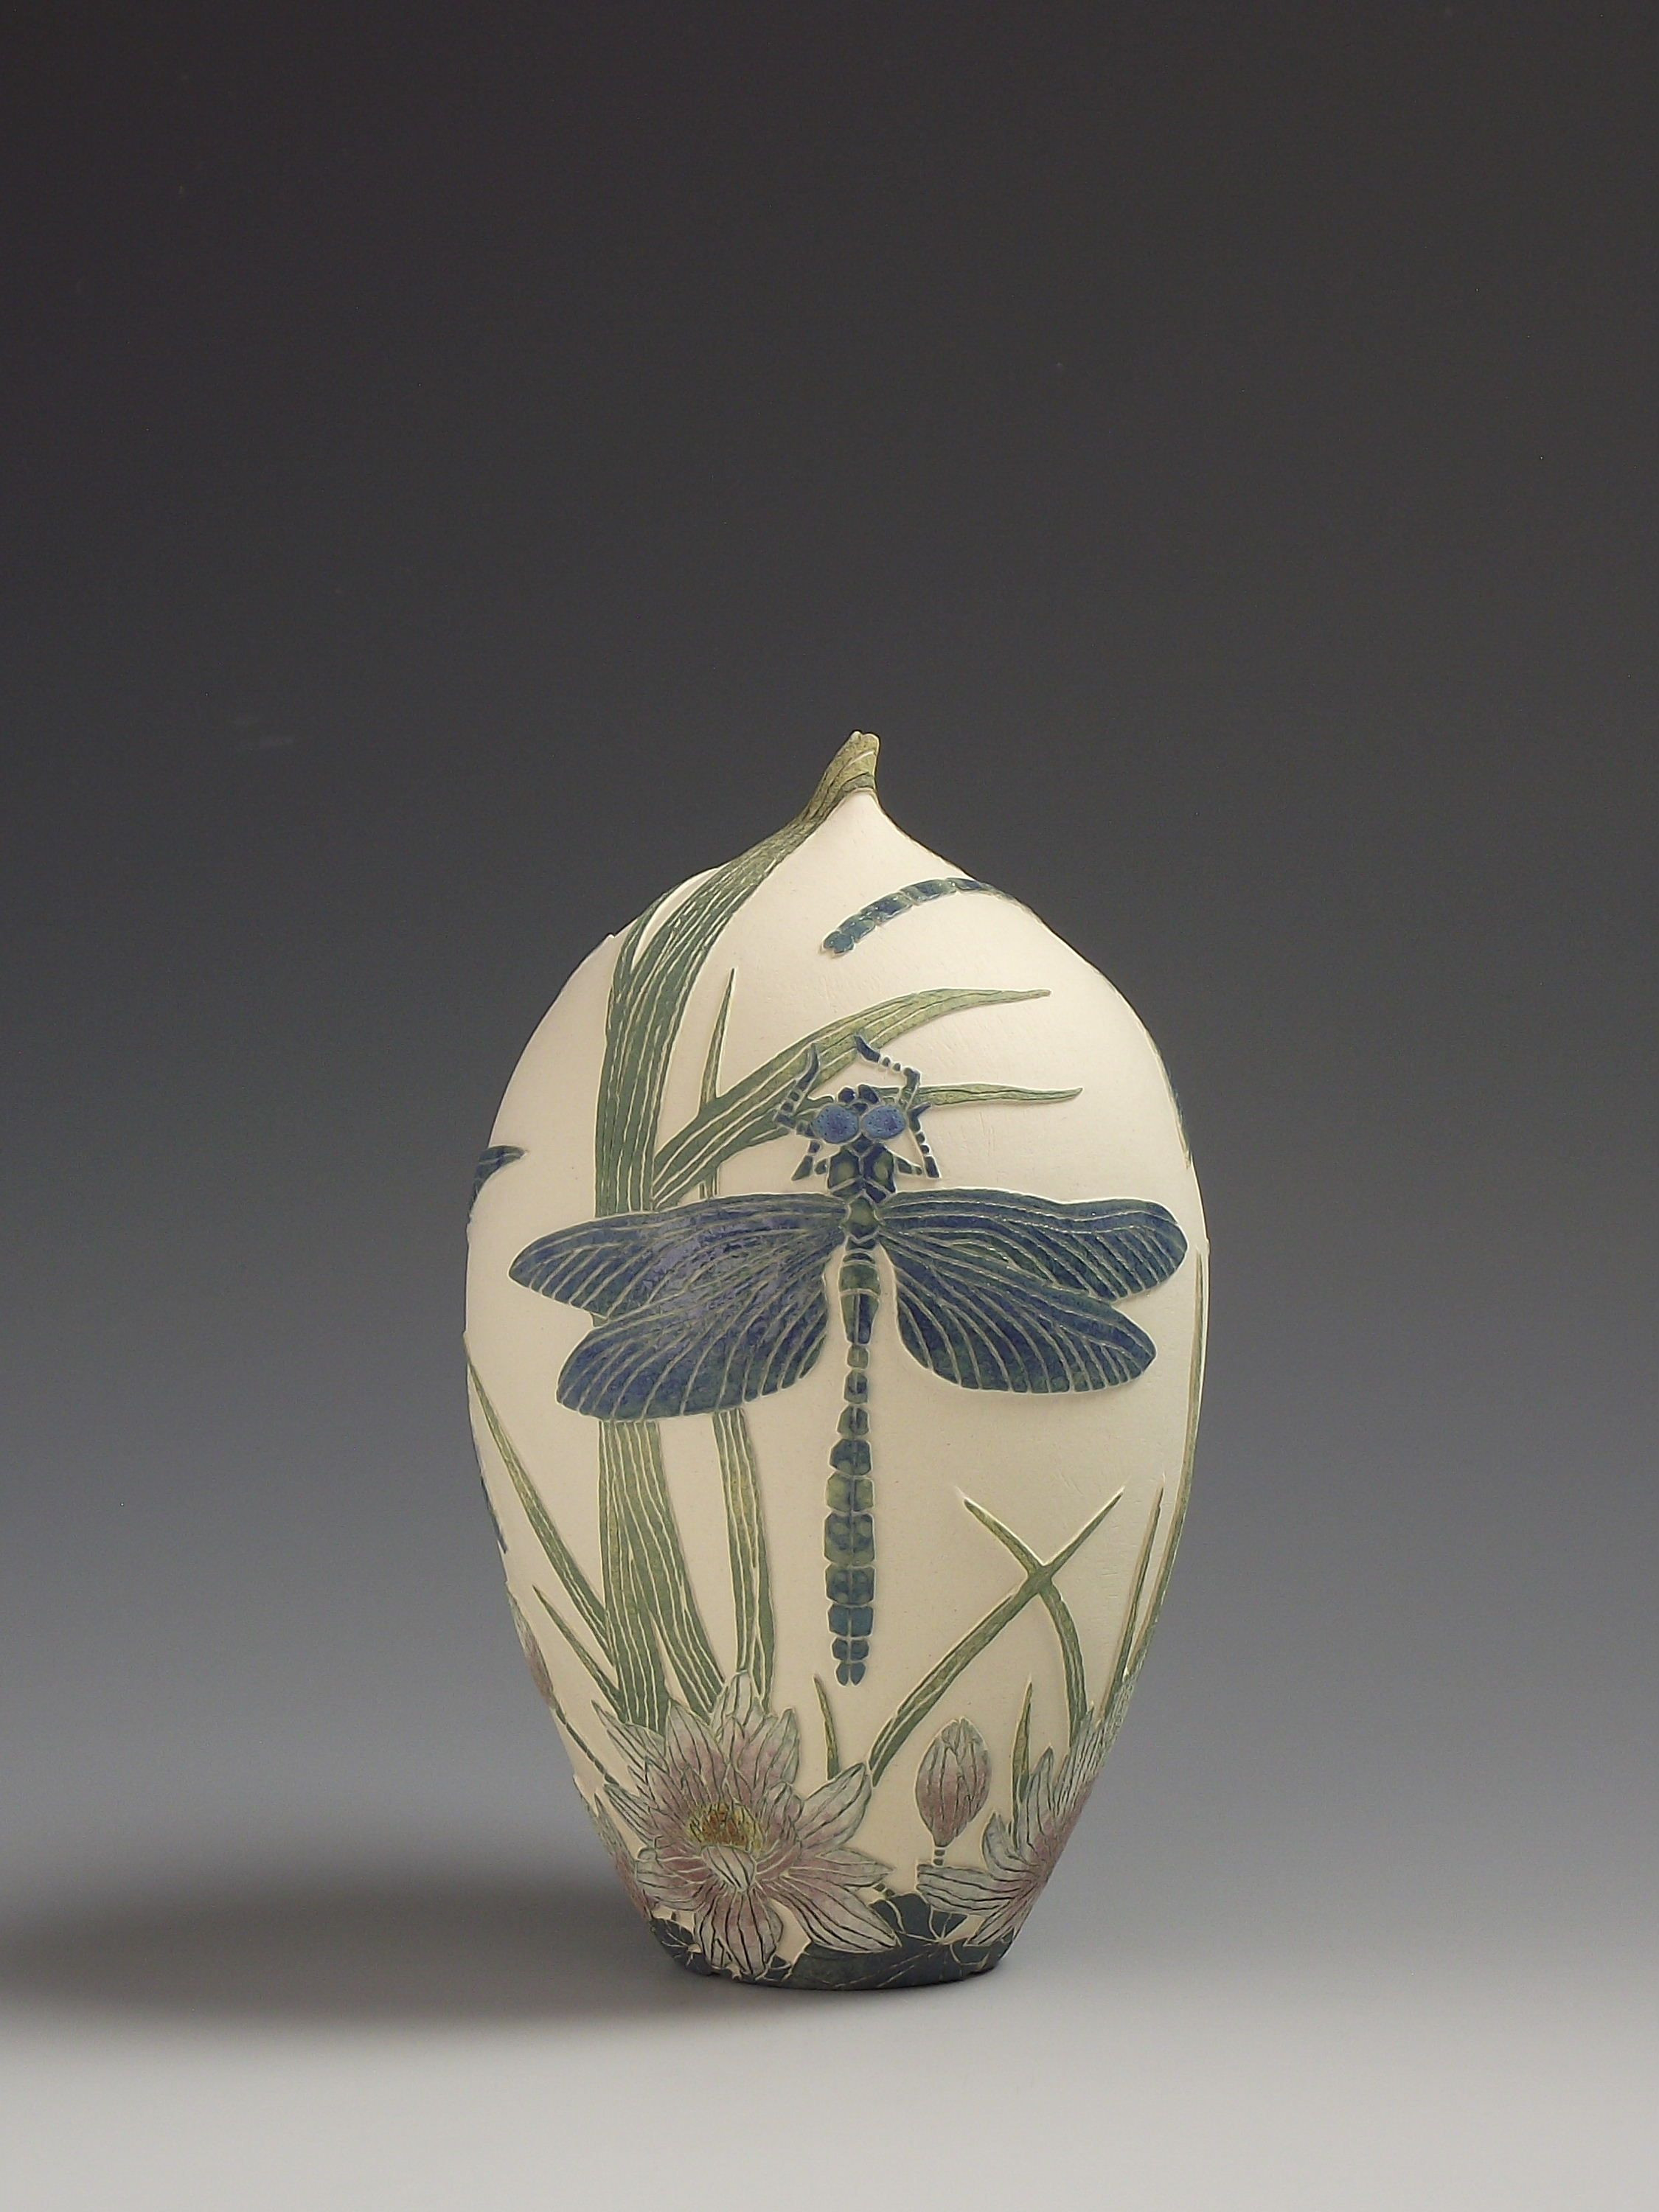 navajo pottery vases of southern hawker dragonfly water lily ceramic sgarffito vessel regarding southern hawker dragonfly water lily ceramic sgarffito vessel